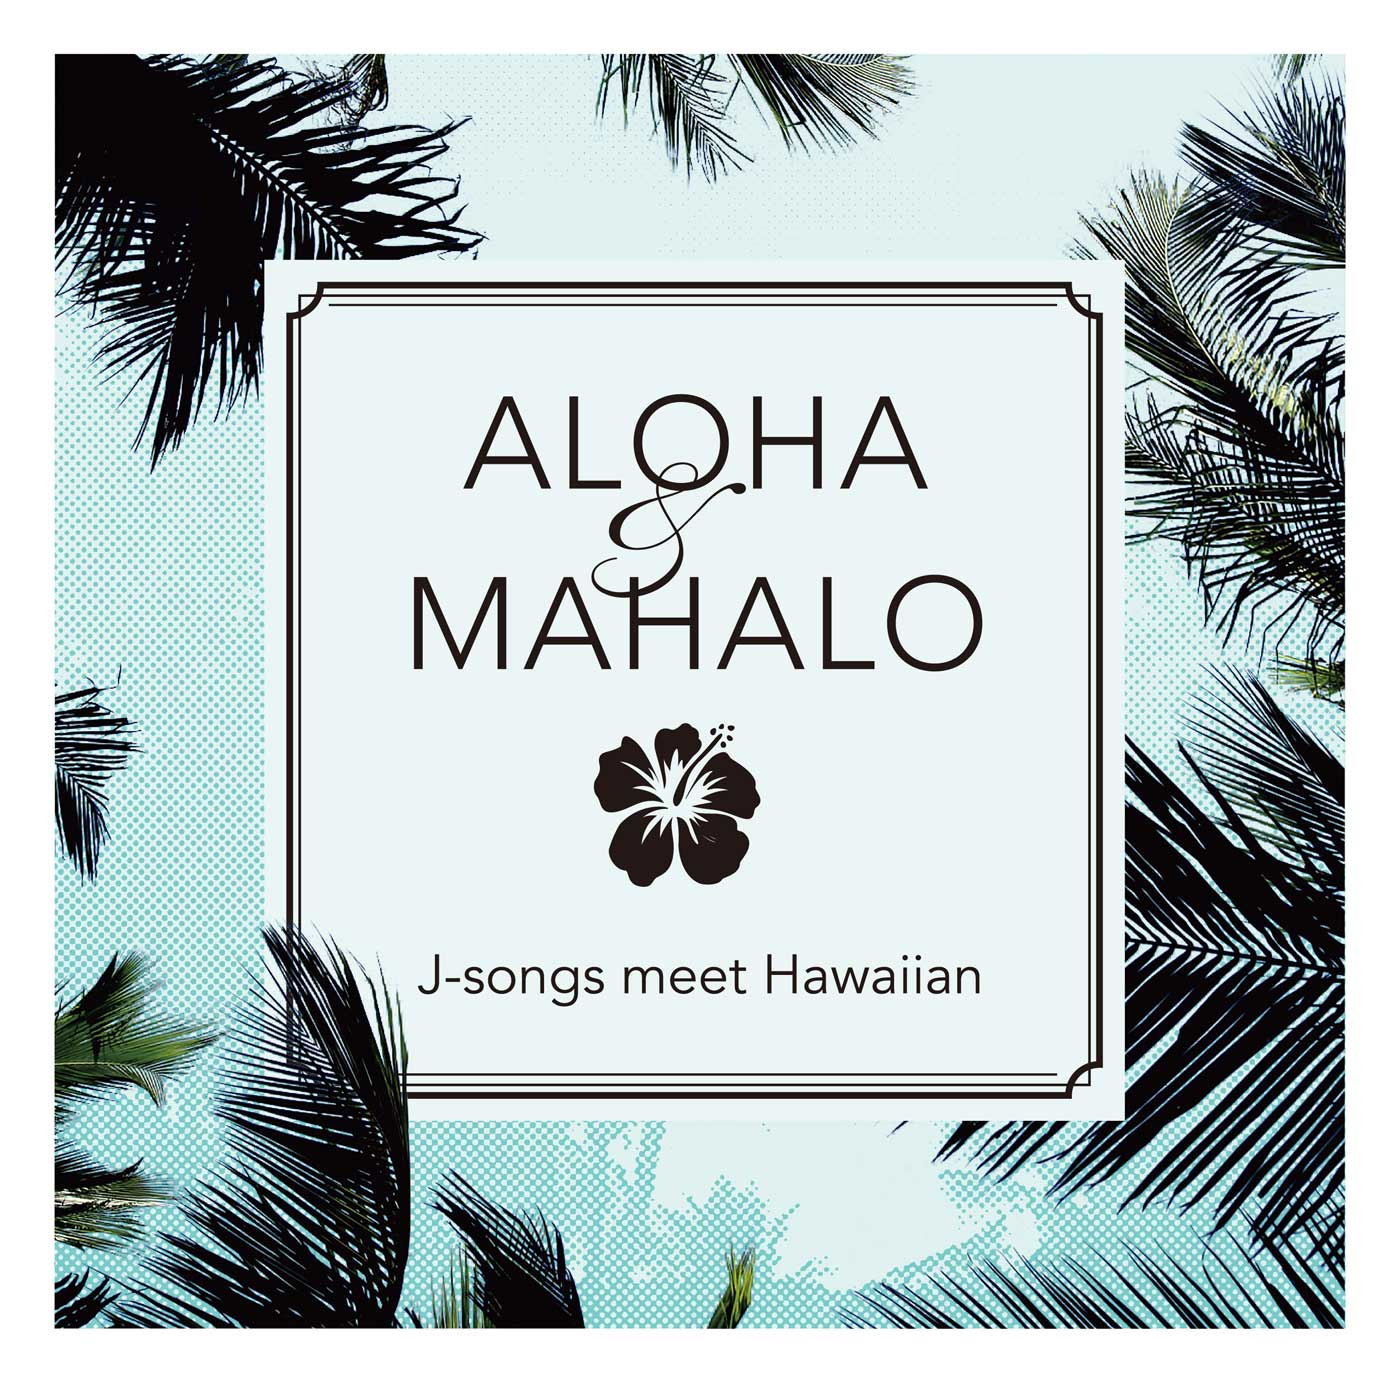 「ALOHA&MAHALO J-songs meet Hawaiian」